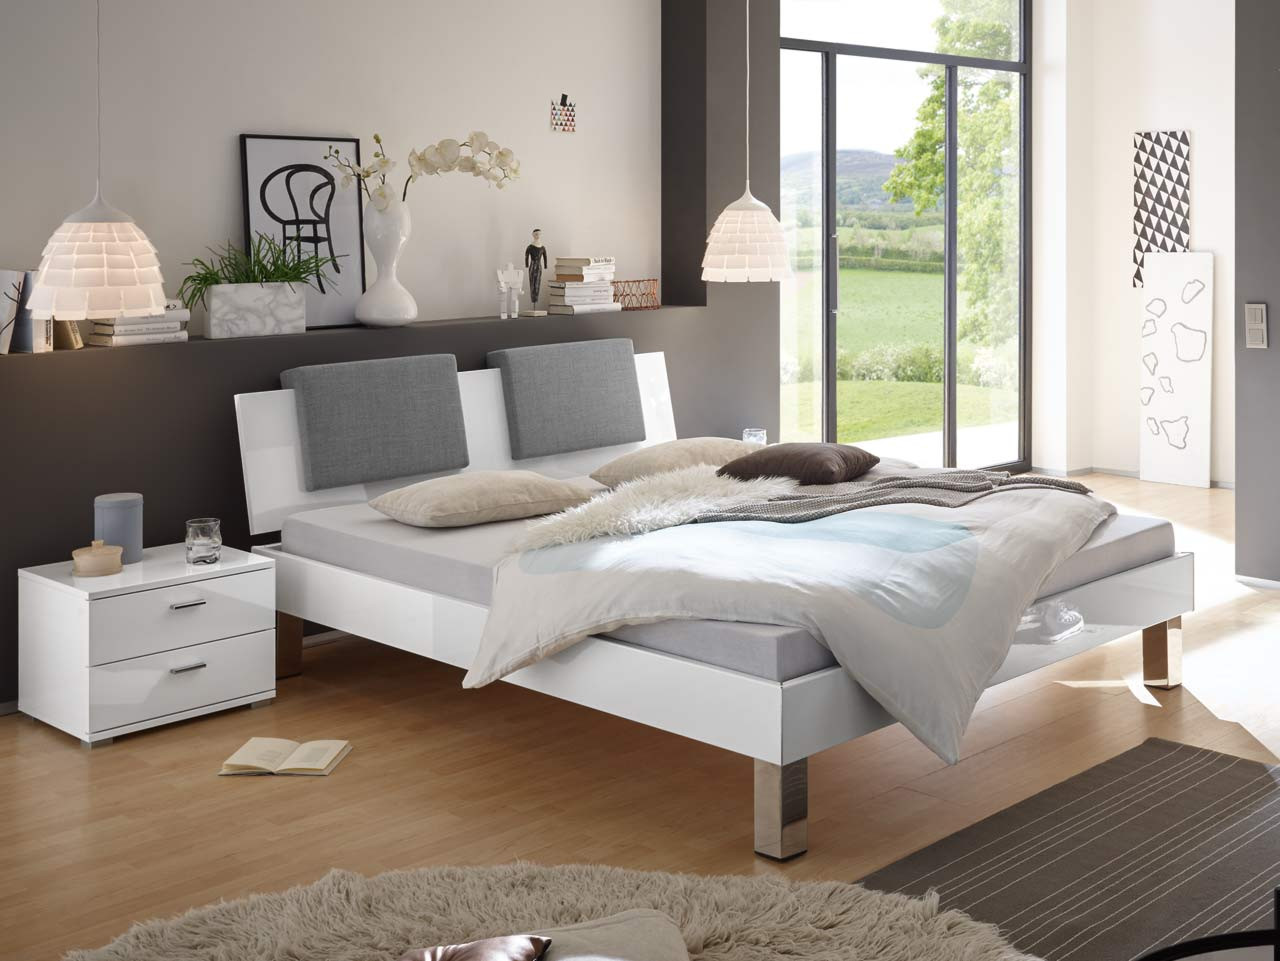 bett weiss 140x200 genial bett x mit bettkasten wei with. Black Bedroom Furniture Sets. Home Design Ideas